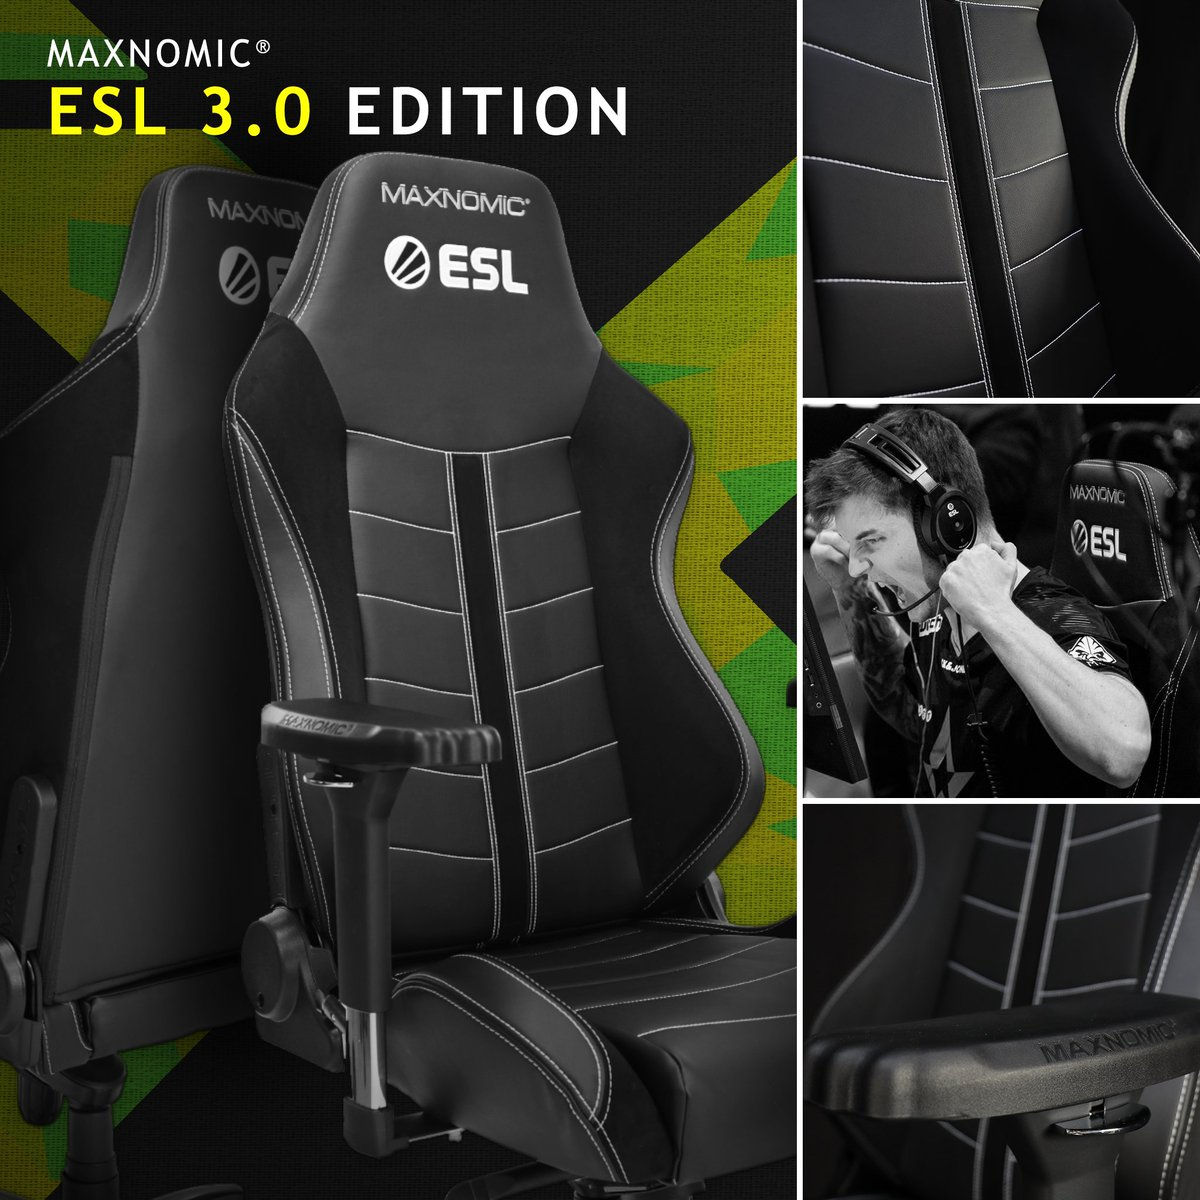 Maxnomic Gutschein Needforseat International Needforseat Twitter